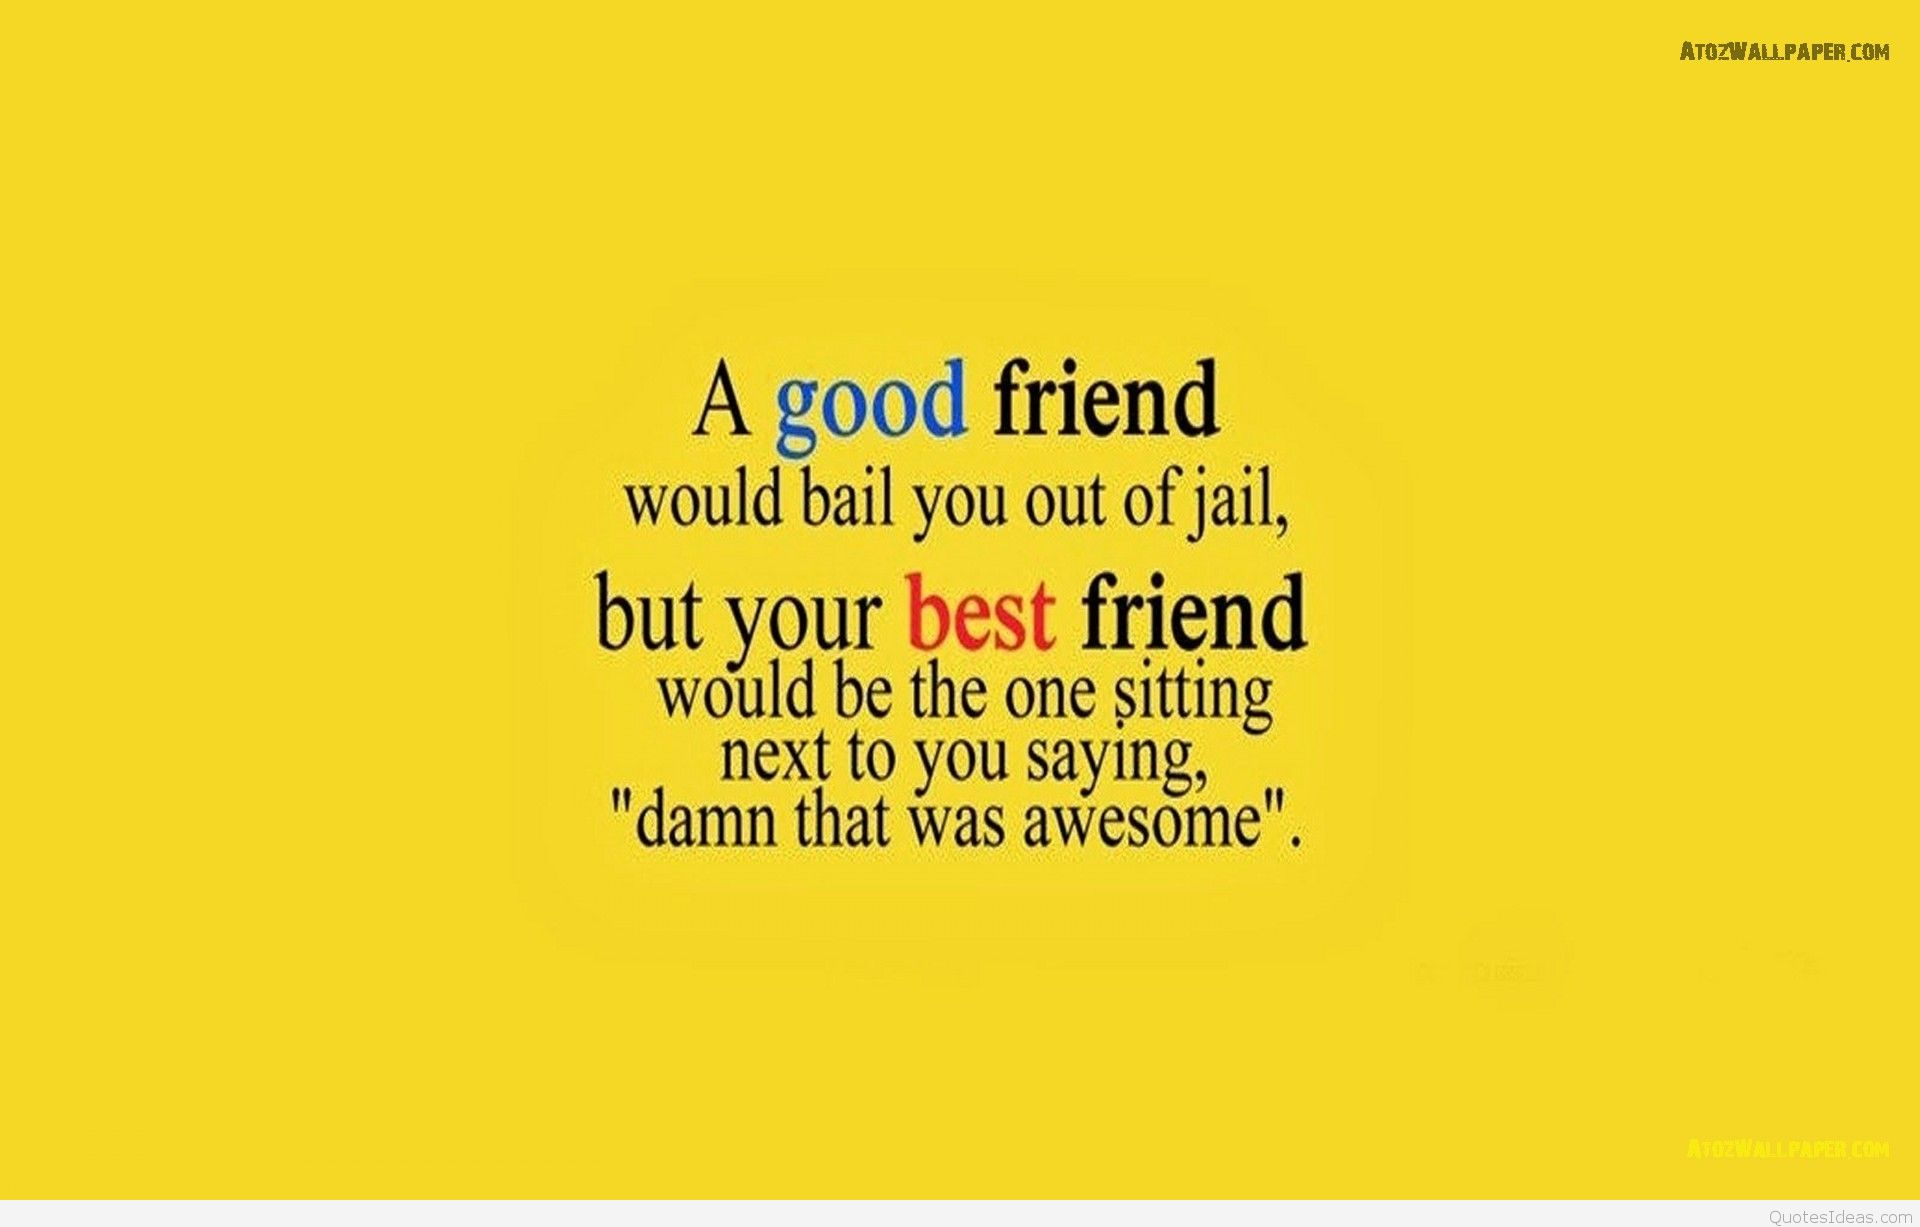 Friendship Day Hd - Download Free Friendship Day Hd in 2880x1800 ...